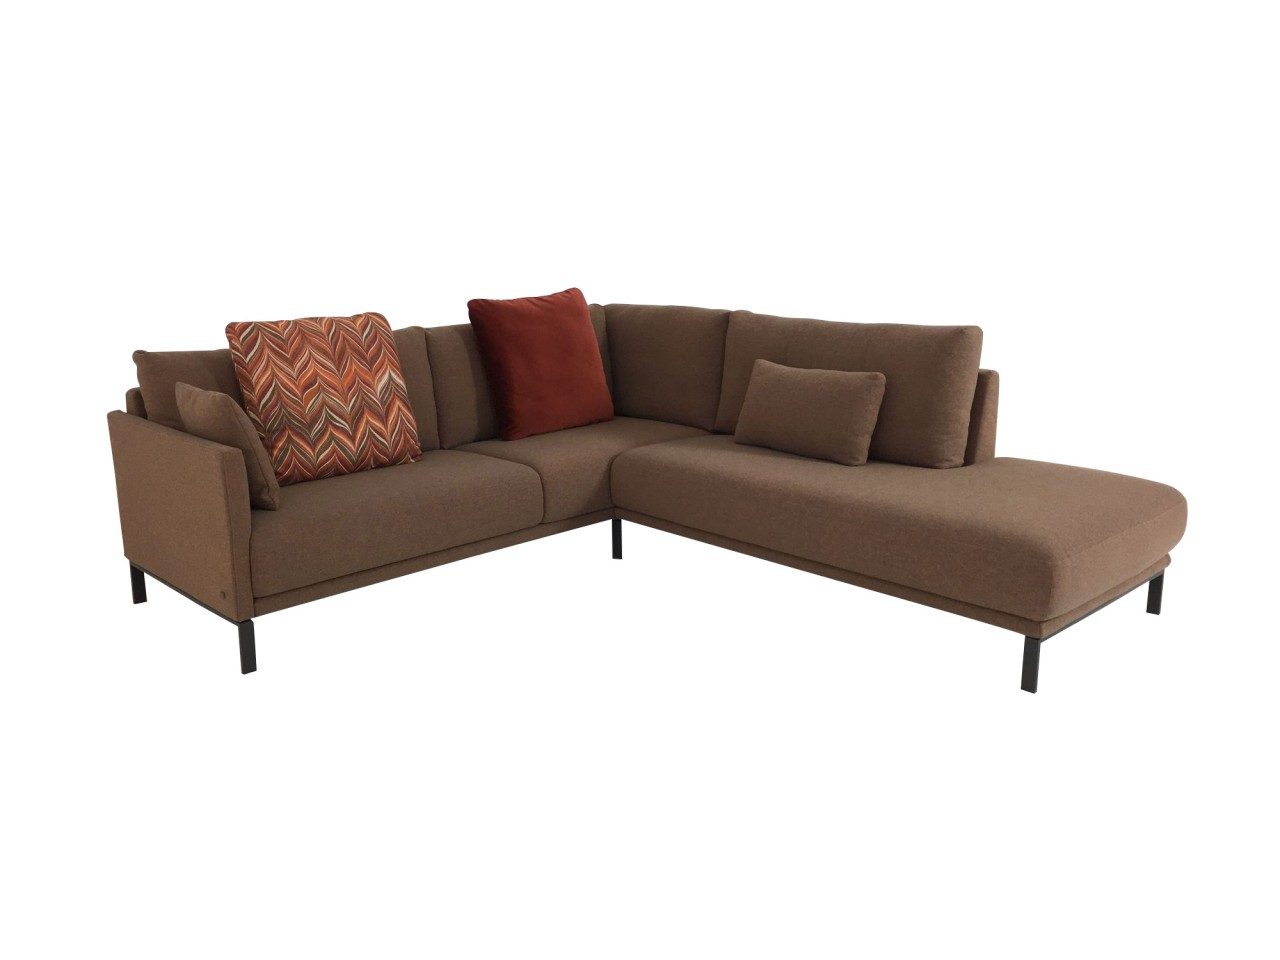 Rolf Benz Cara Ecksofa In Stoff Beige Orange Mit